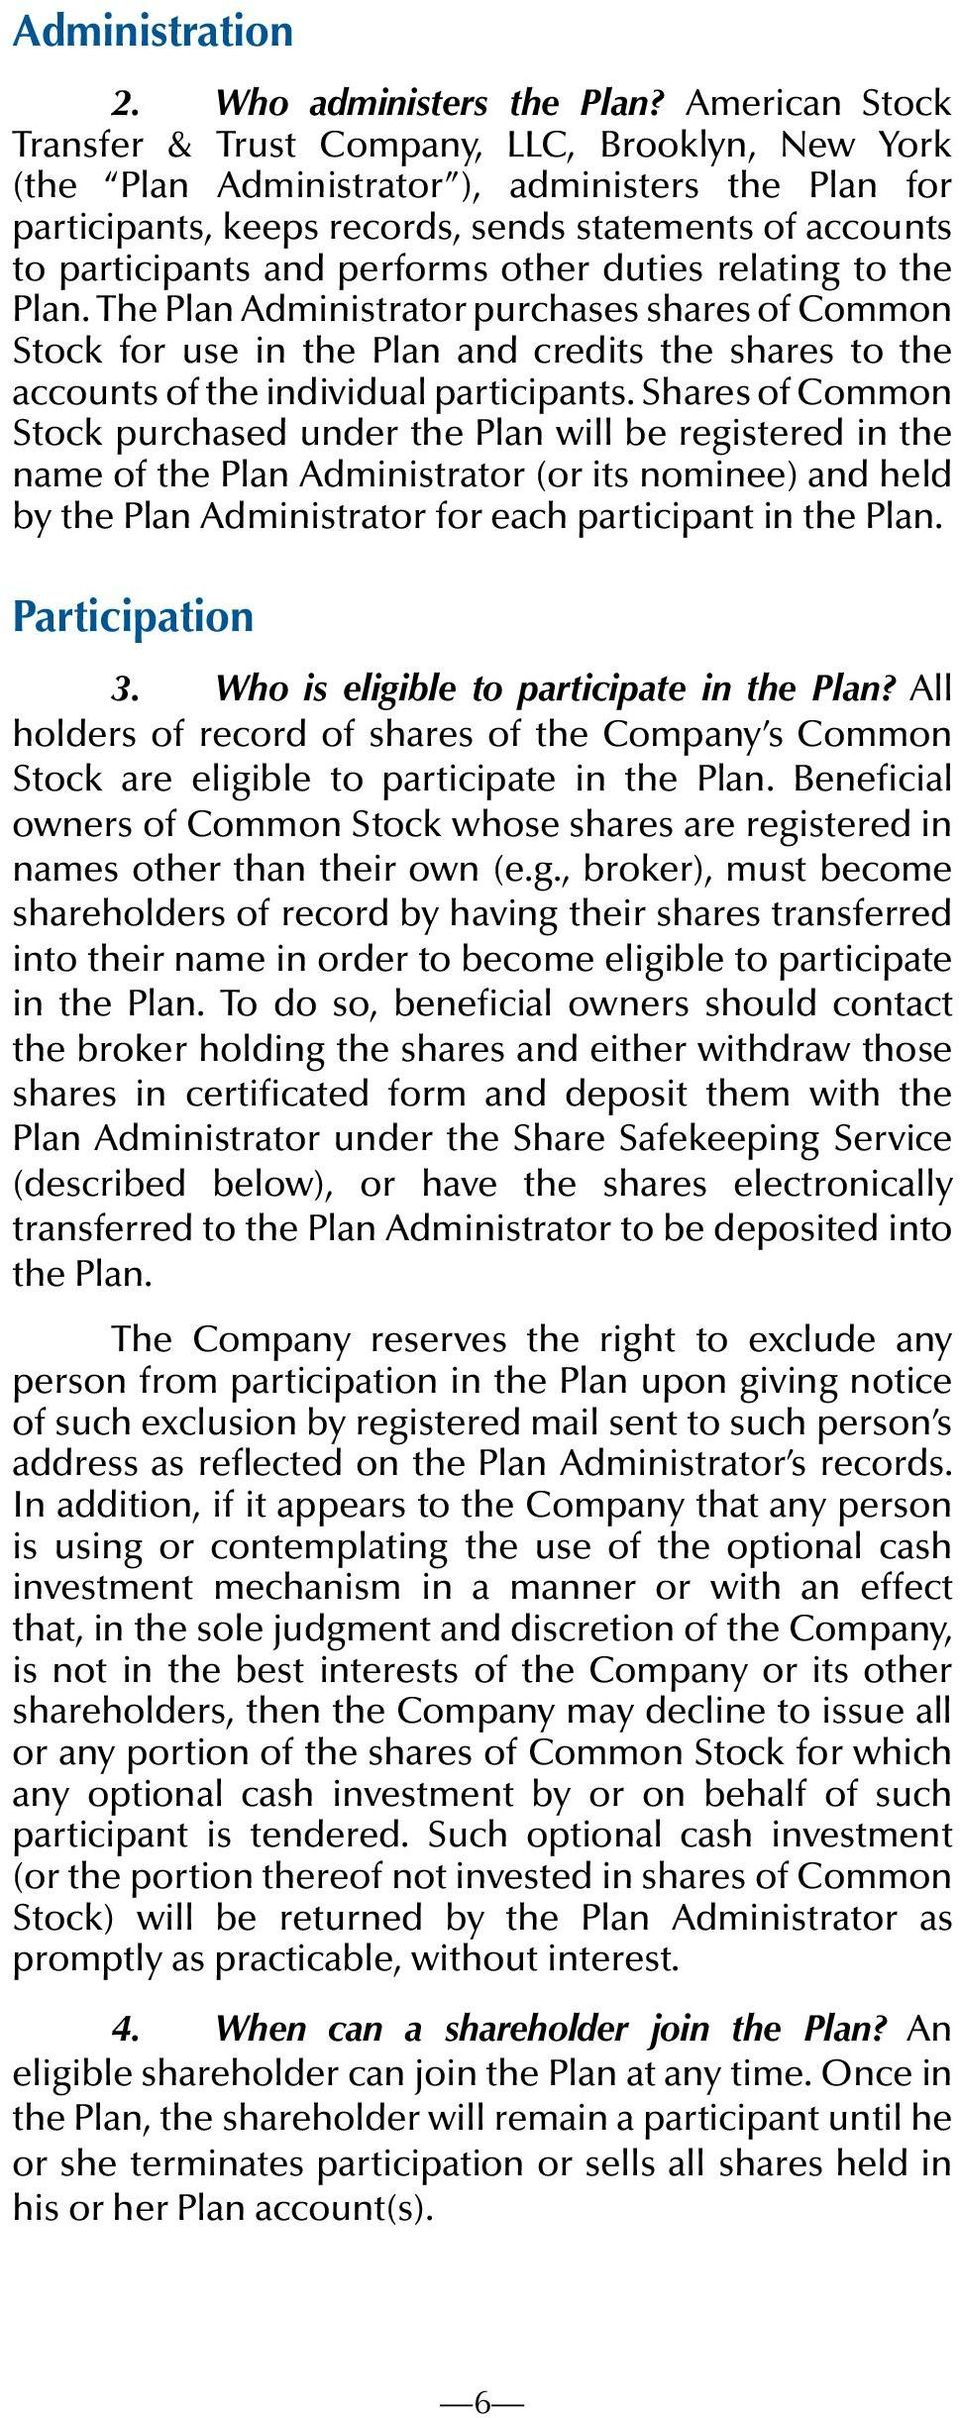 performs other duties relating to the Plan. The Plan Administrator purchases shares of Common Stock for use in the Plan and credits the shares to the accounts of the individual participants.